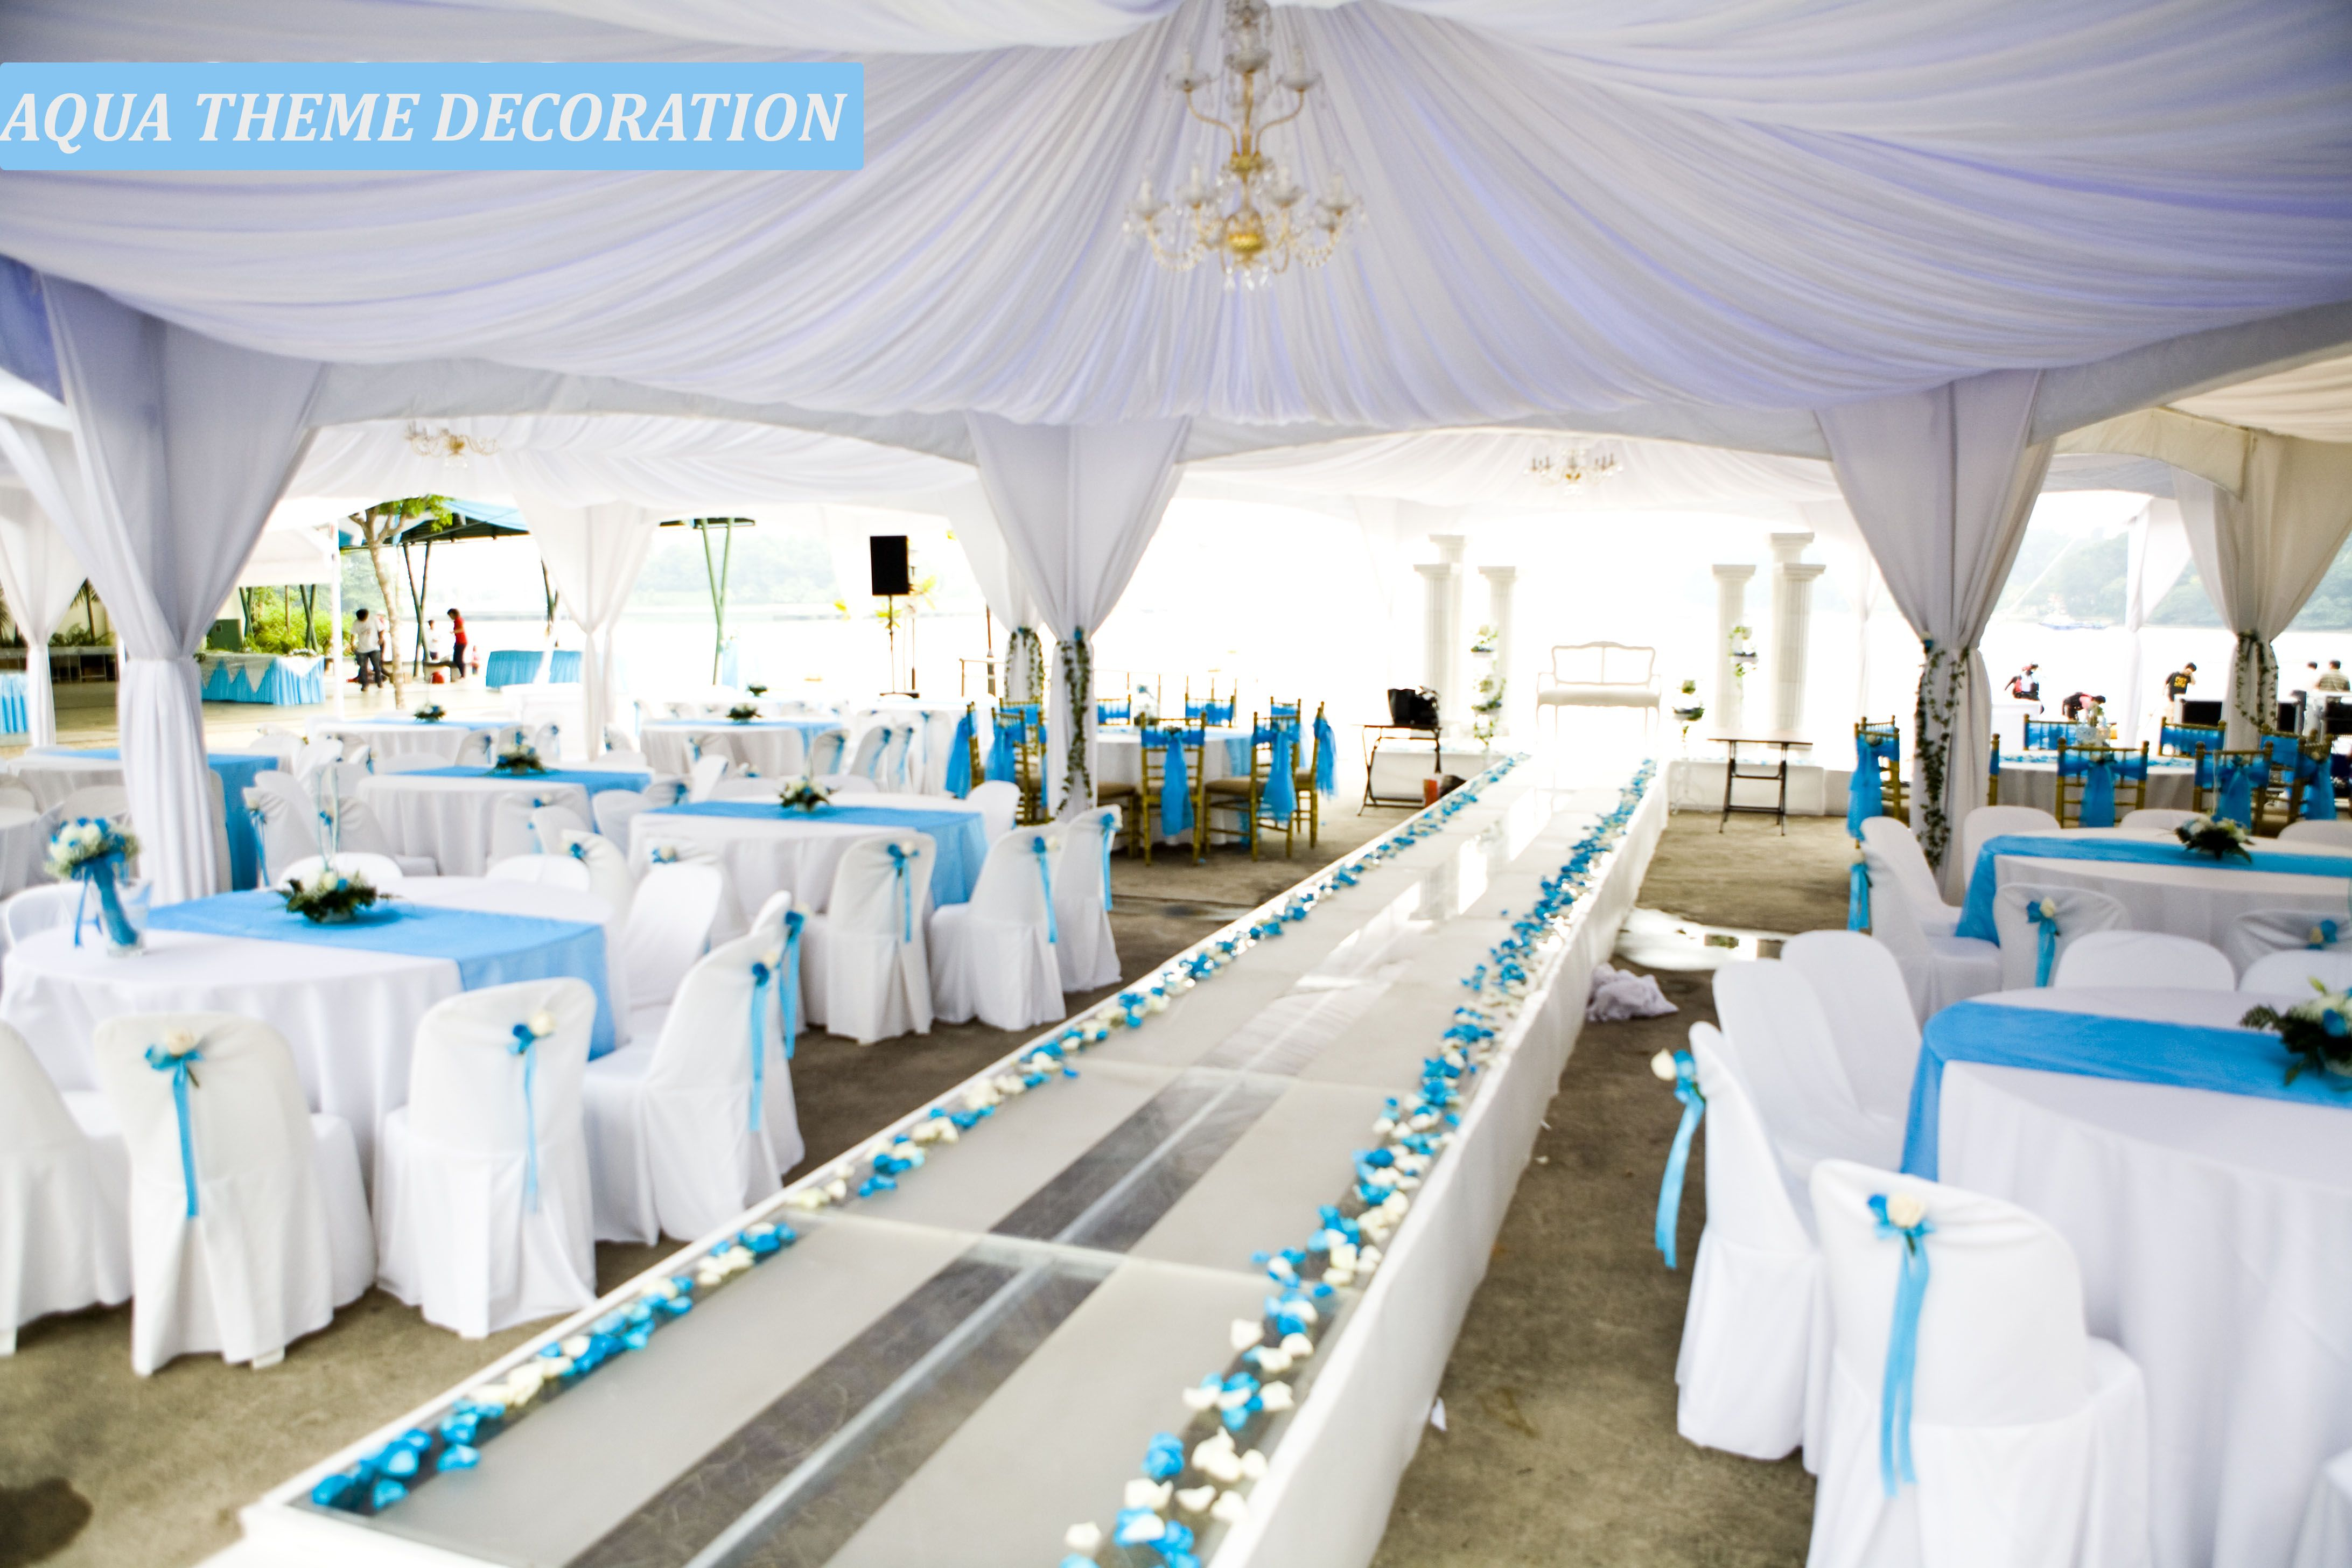 Goa and kerala are the most romantic destinations to organize the blue wedding theme labrador park of national park board junglespirit Choice Image